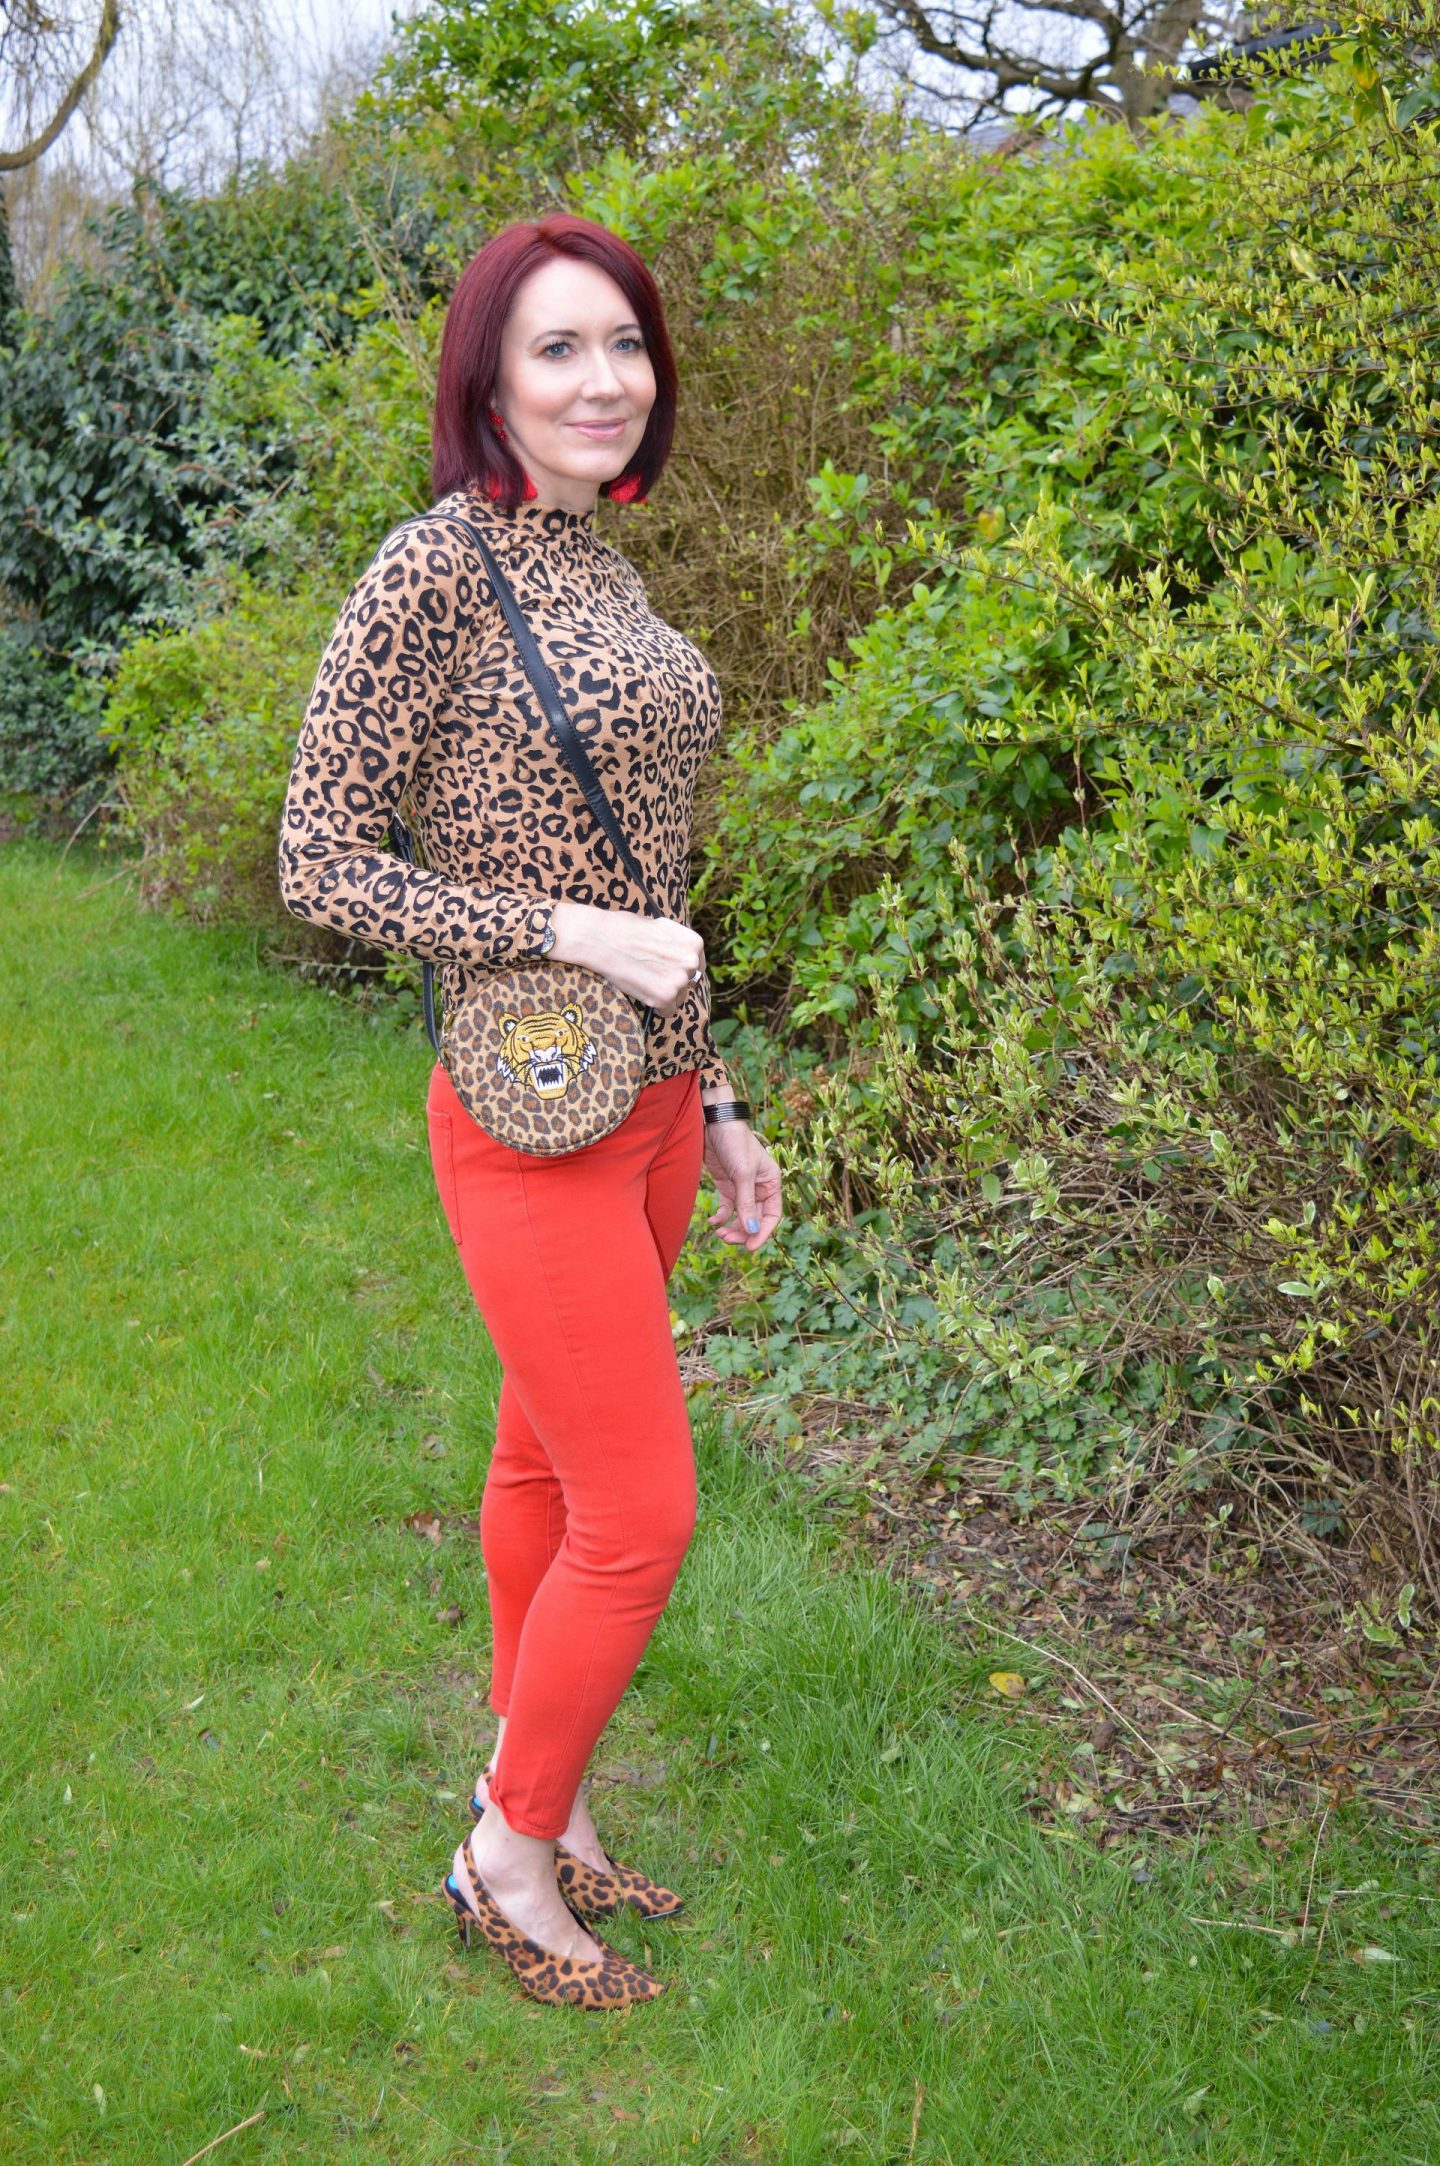 Coloured Denim For Spring - March Stylish Monday link up, Gap red skinny jeans, Skinny Dip leopard print bag